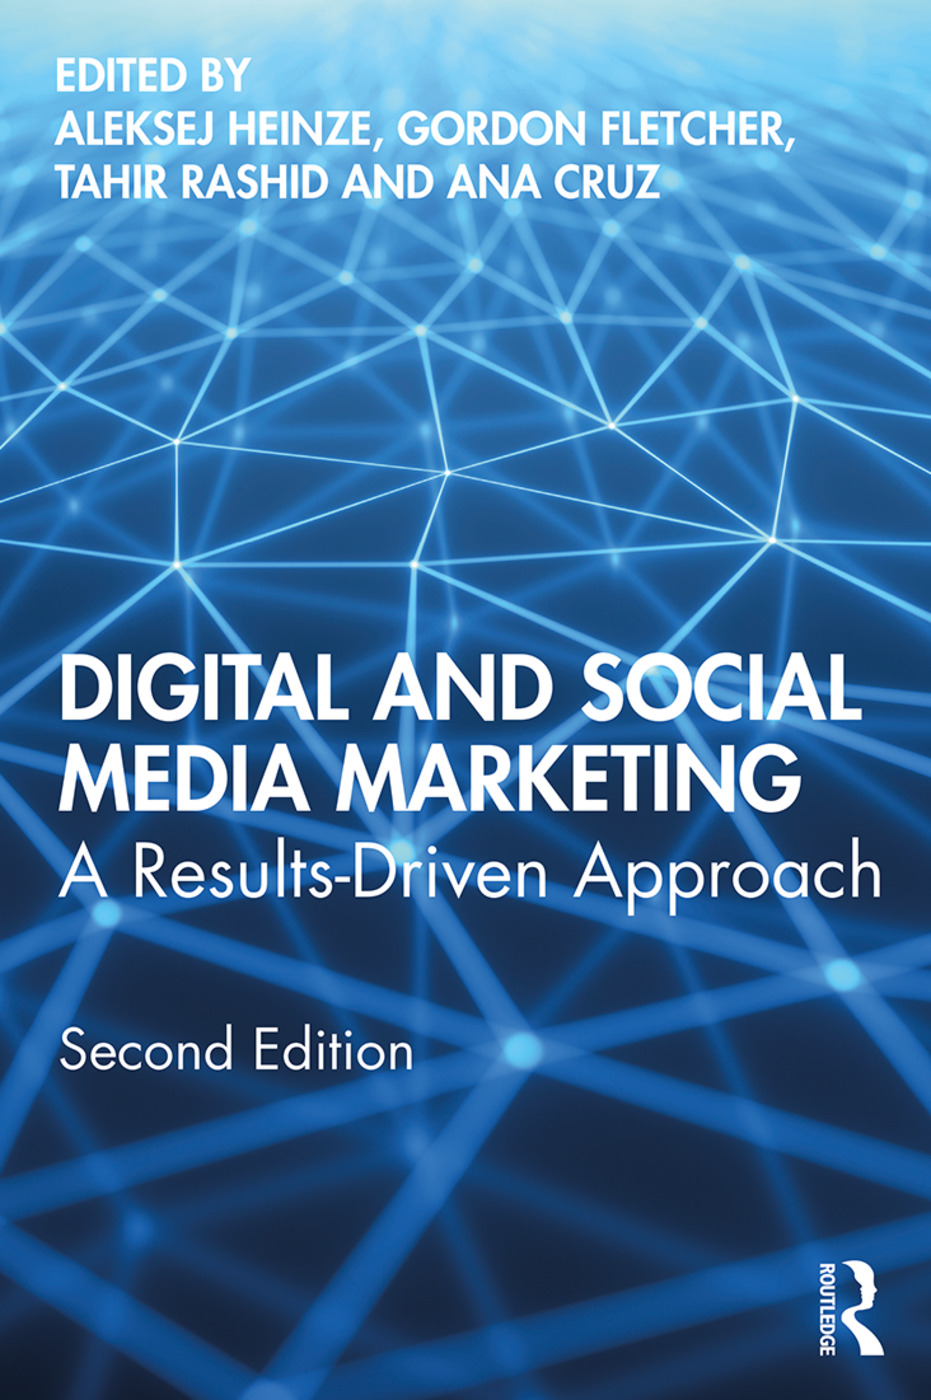 Digital and Social Media Marketing: A Results-Driven Approach book cover